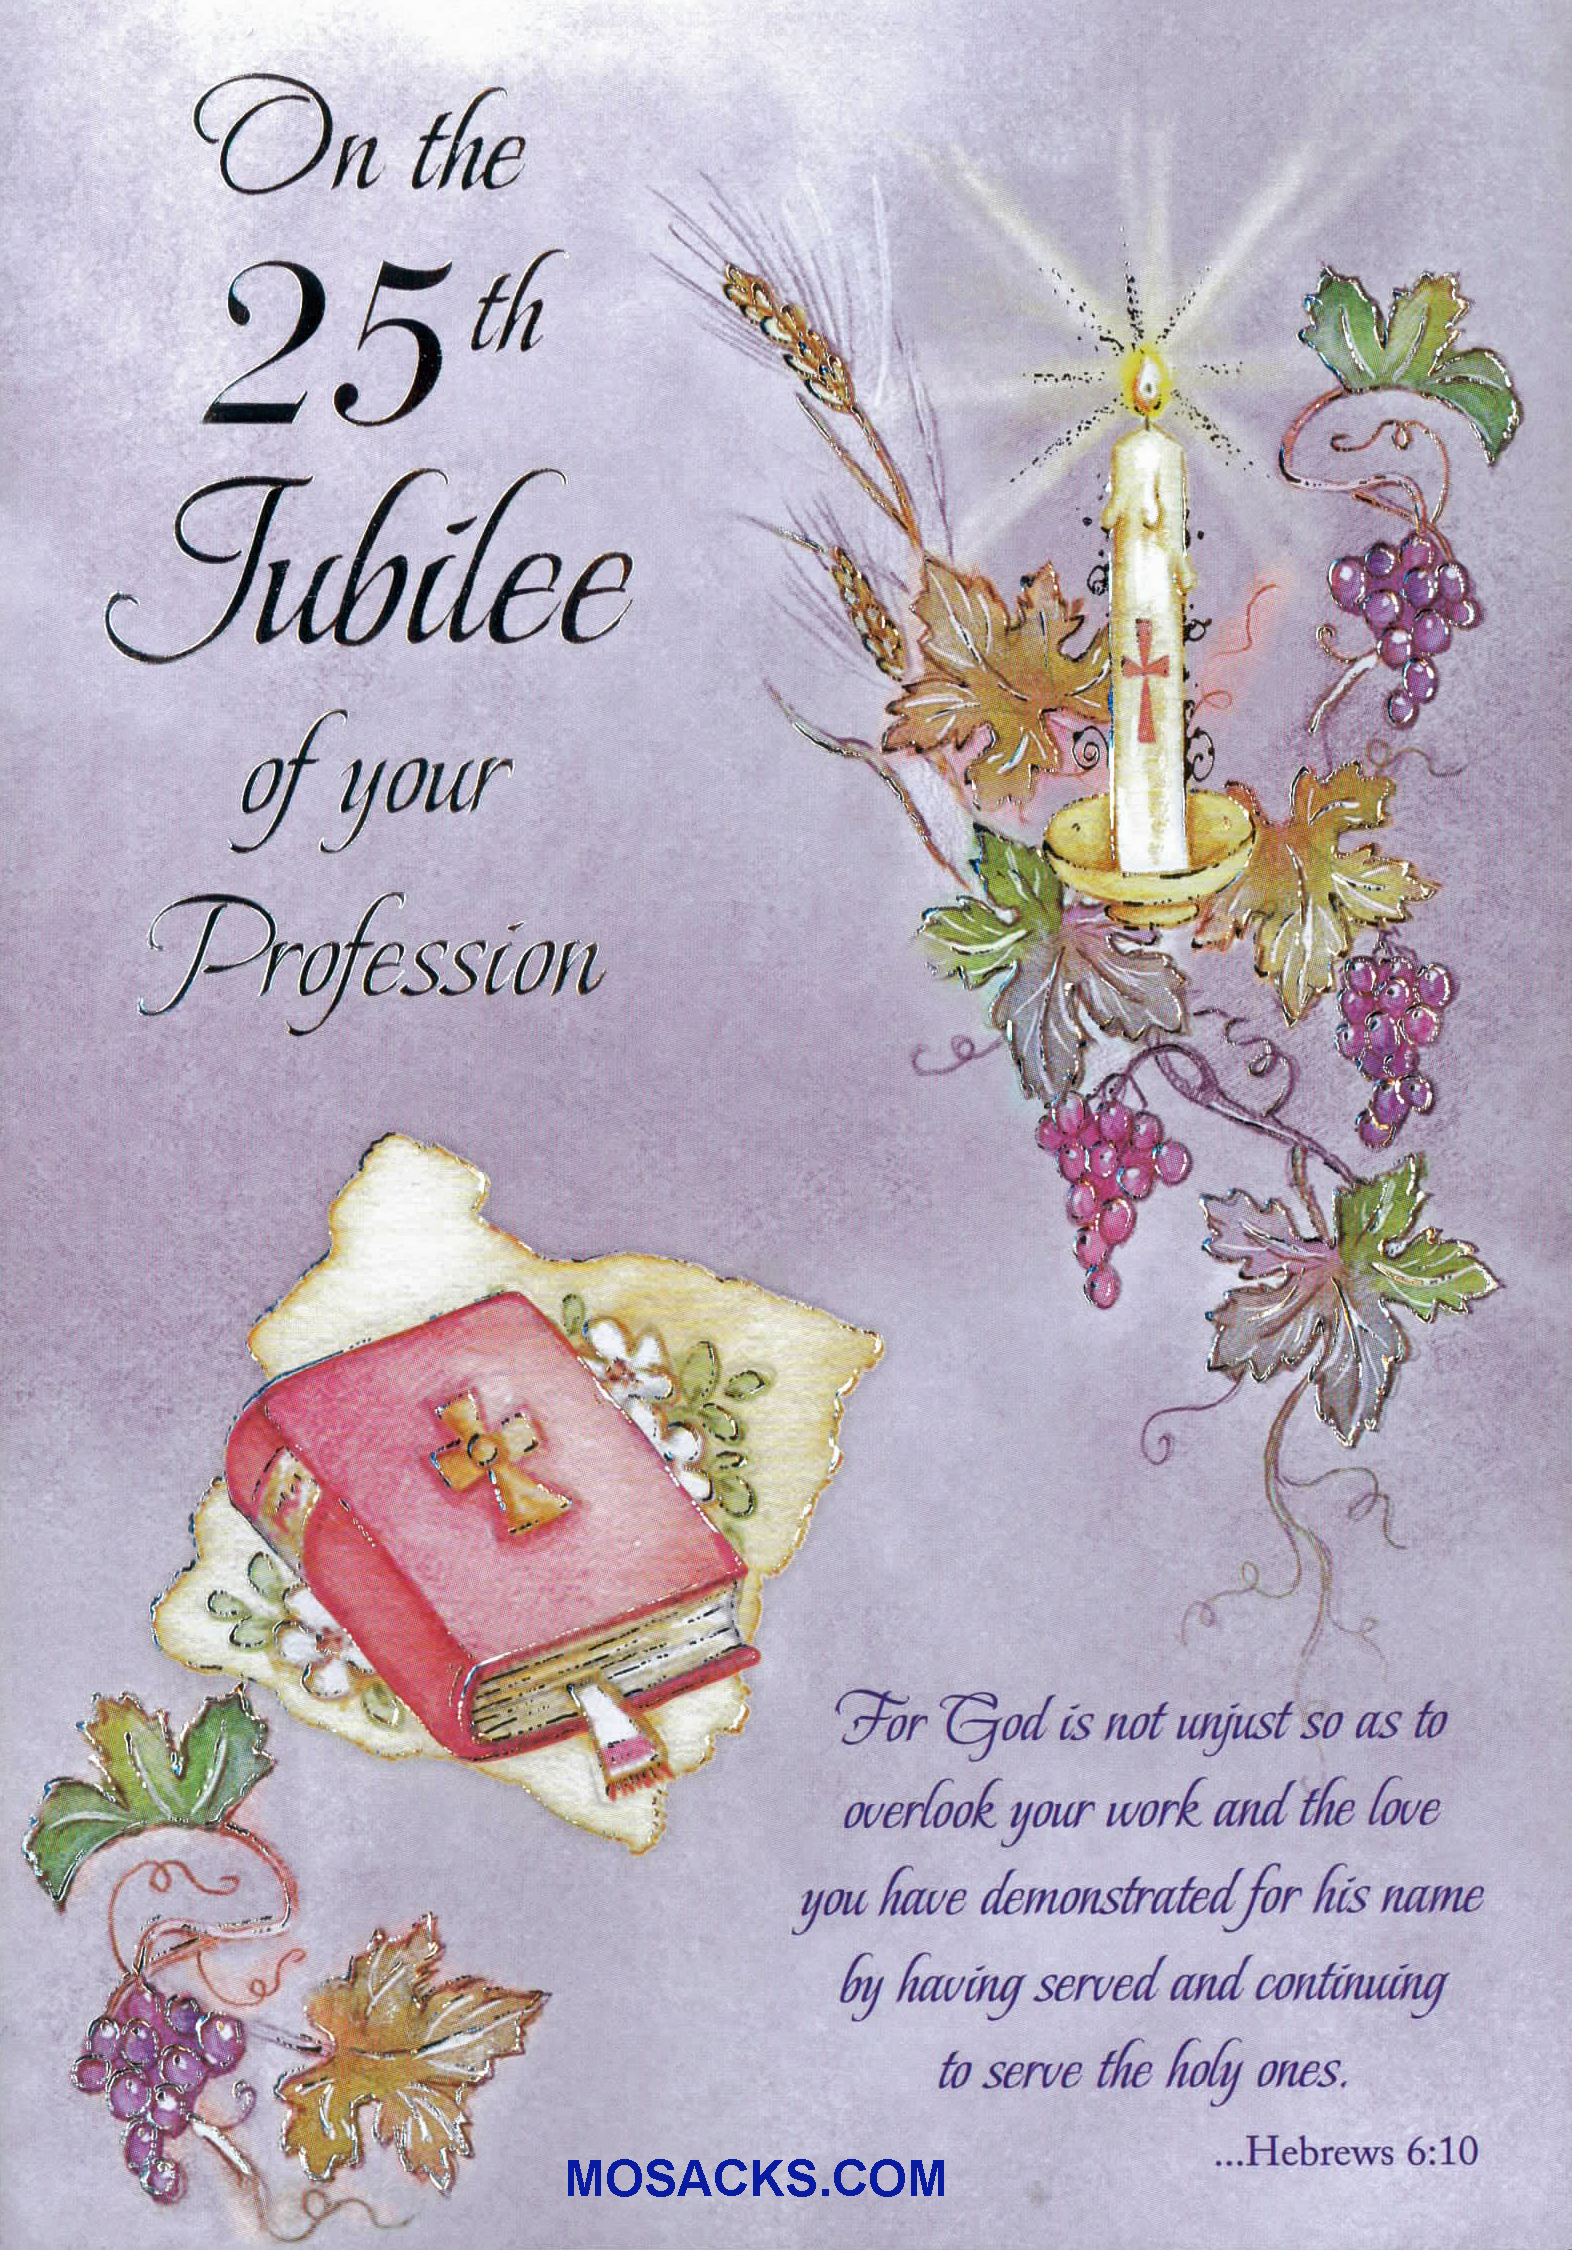 Jubilee anniversary of religious life greeting cards on the 25th jubilee of your profession greeting card jubs87447 kristyandbryce Images